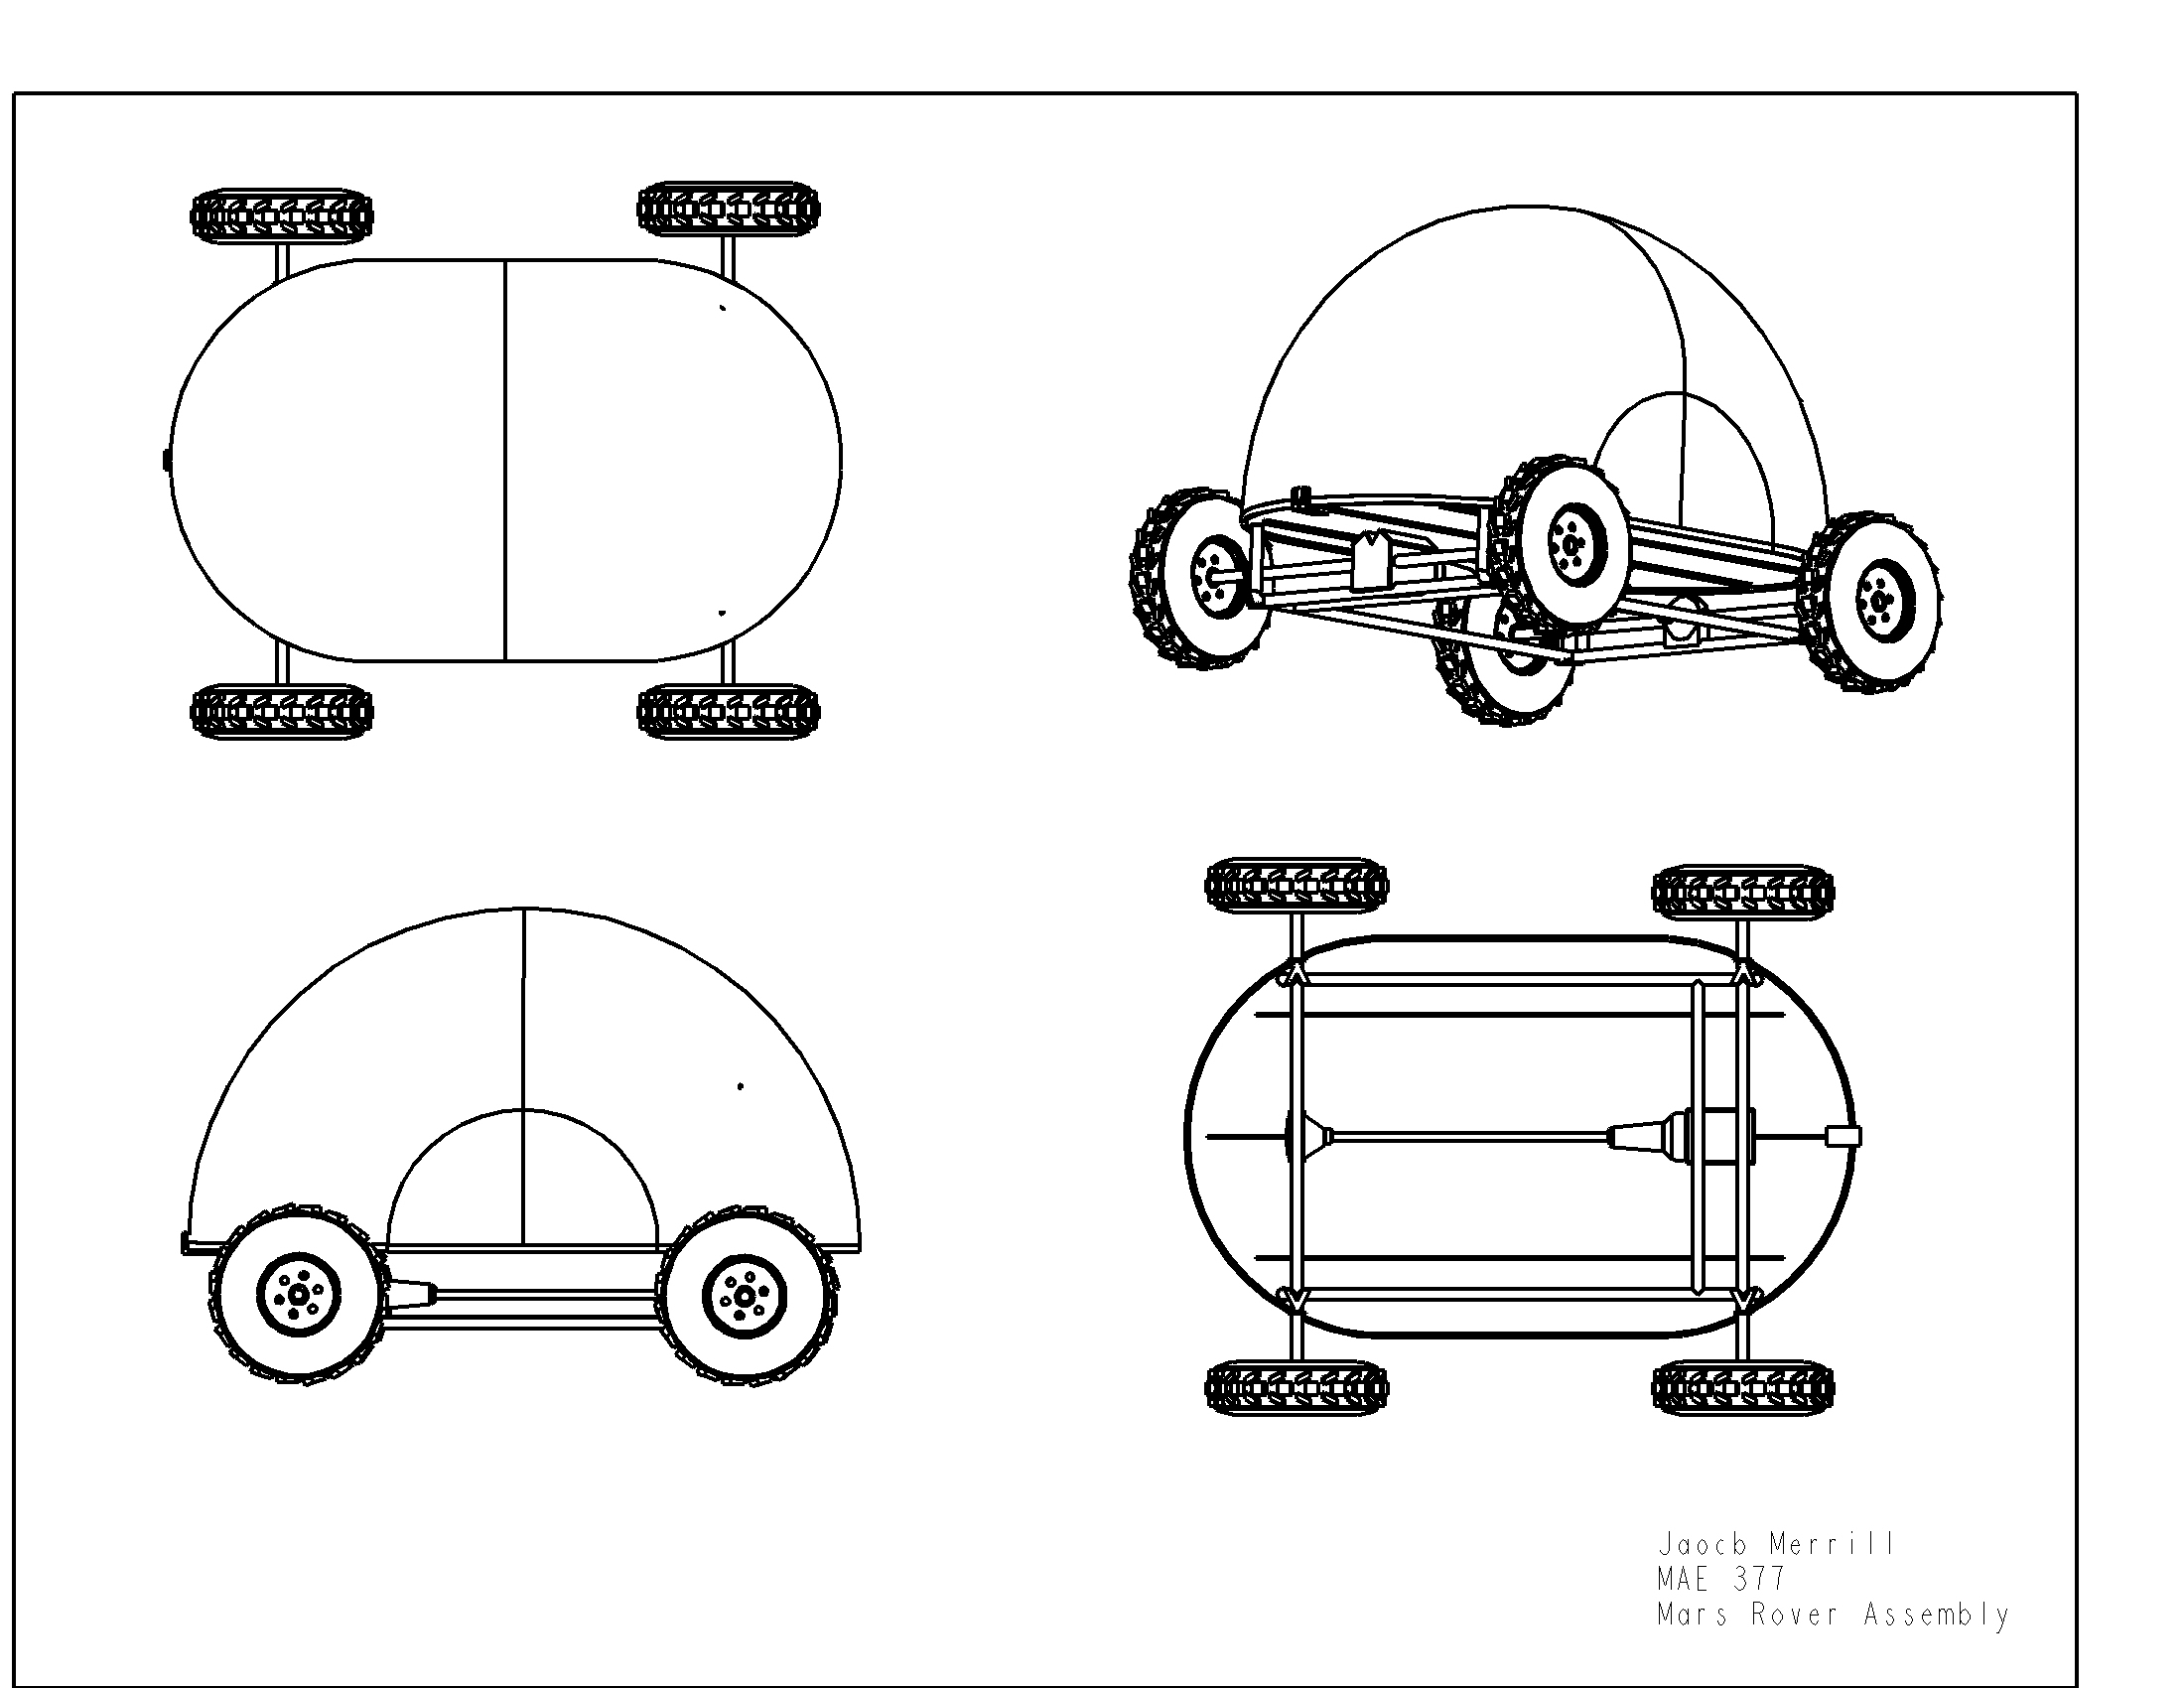 mars curiosity rover technical drawing - photo #17